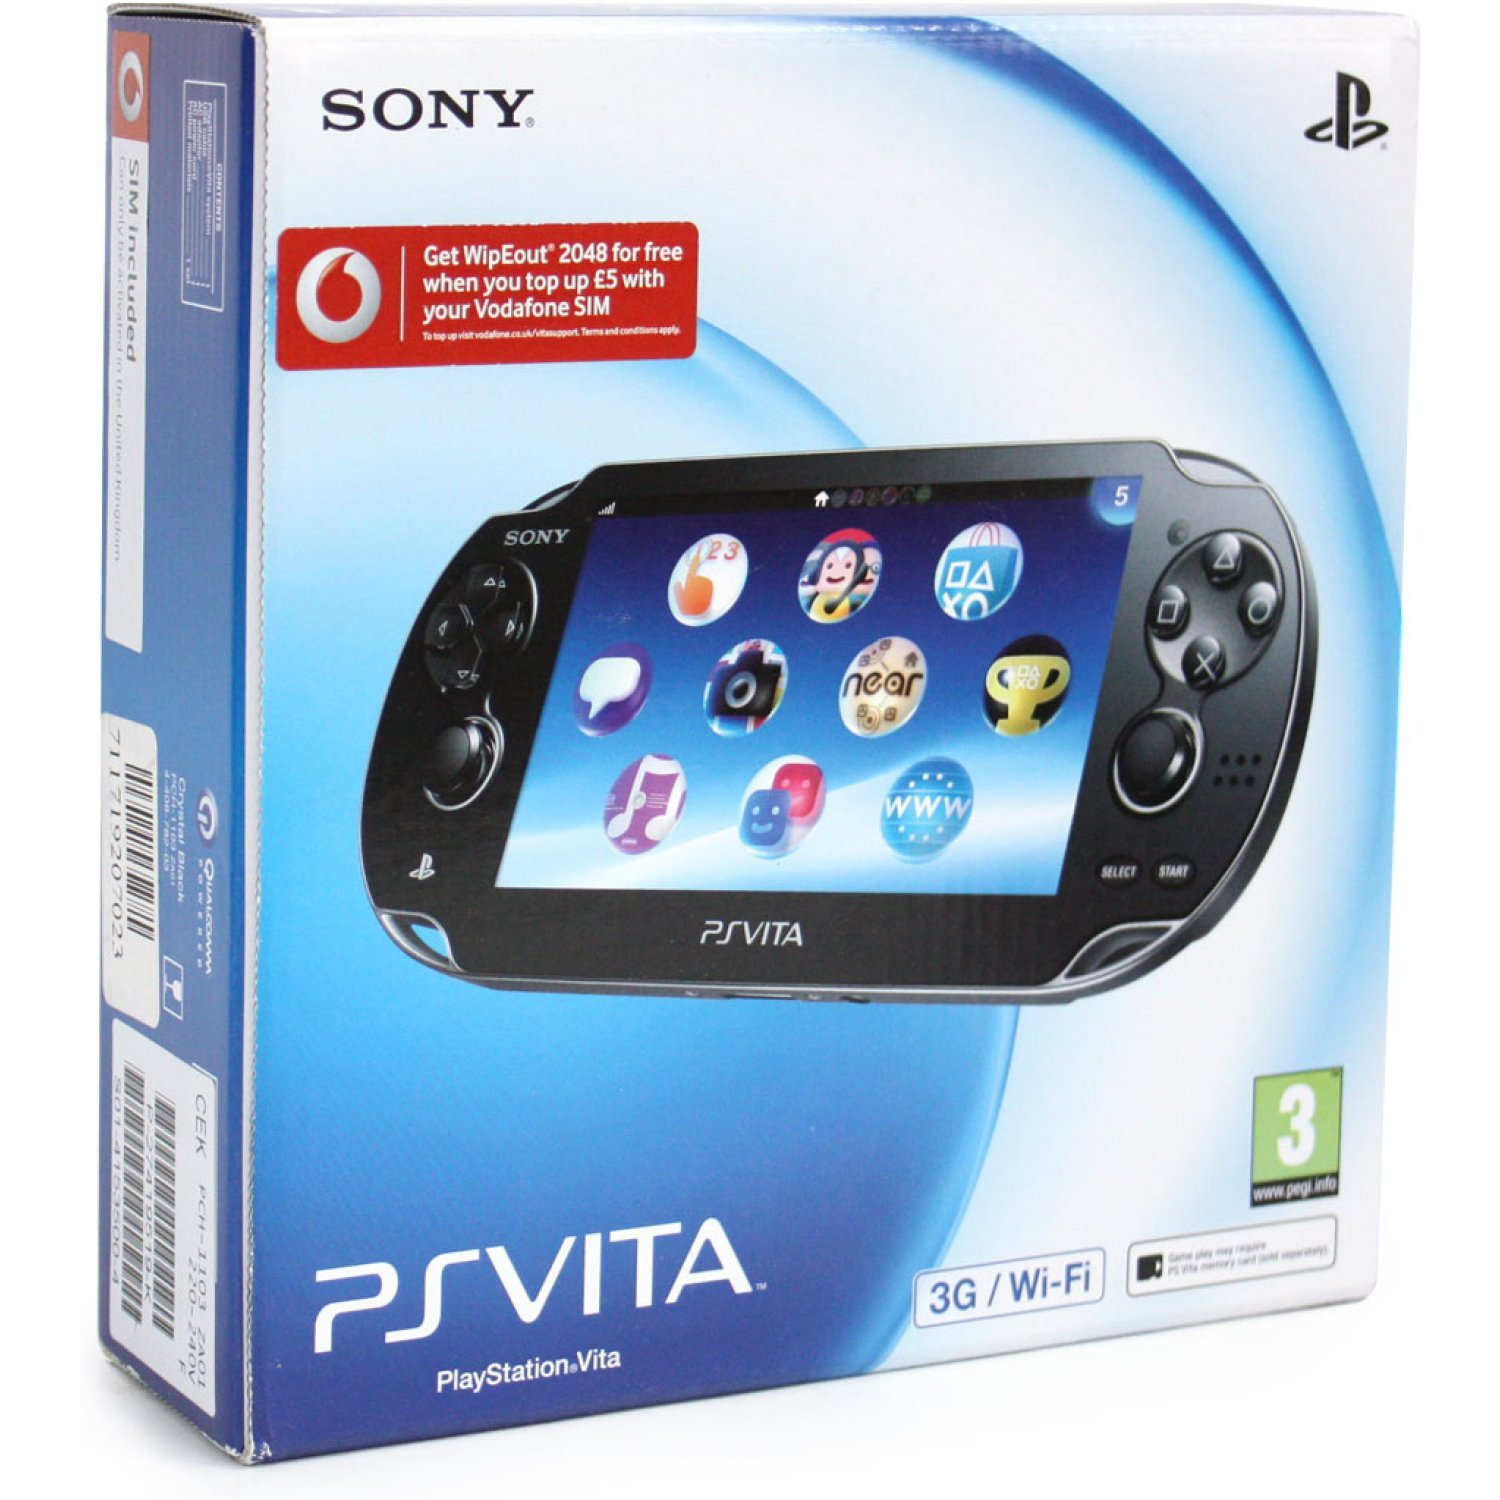 Ps Vita Playstation Vita 3g Wi Fi Model Crystal Black